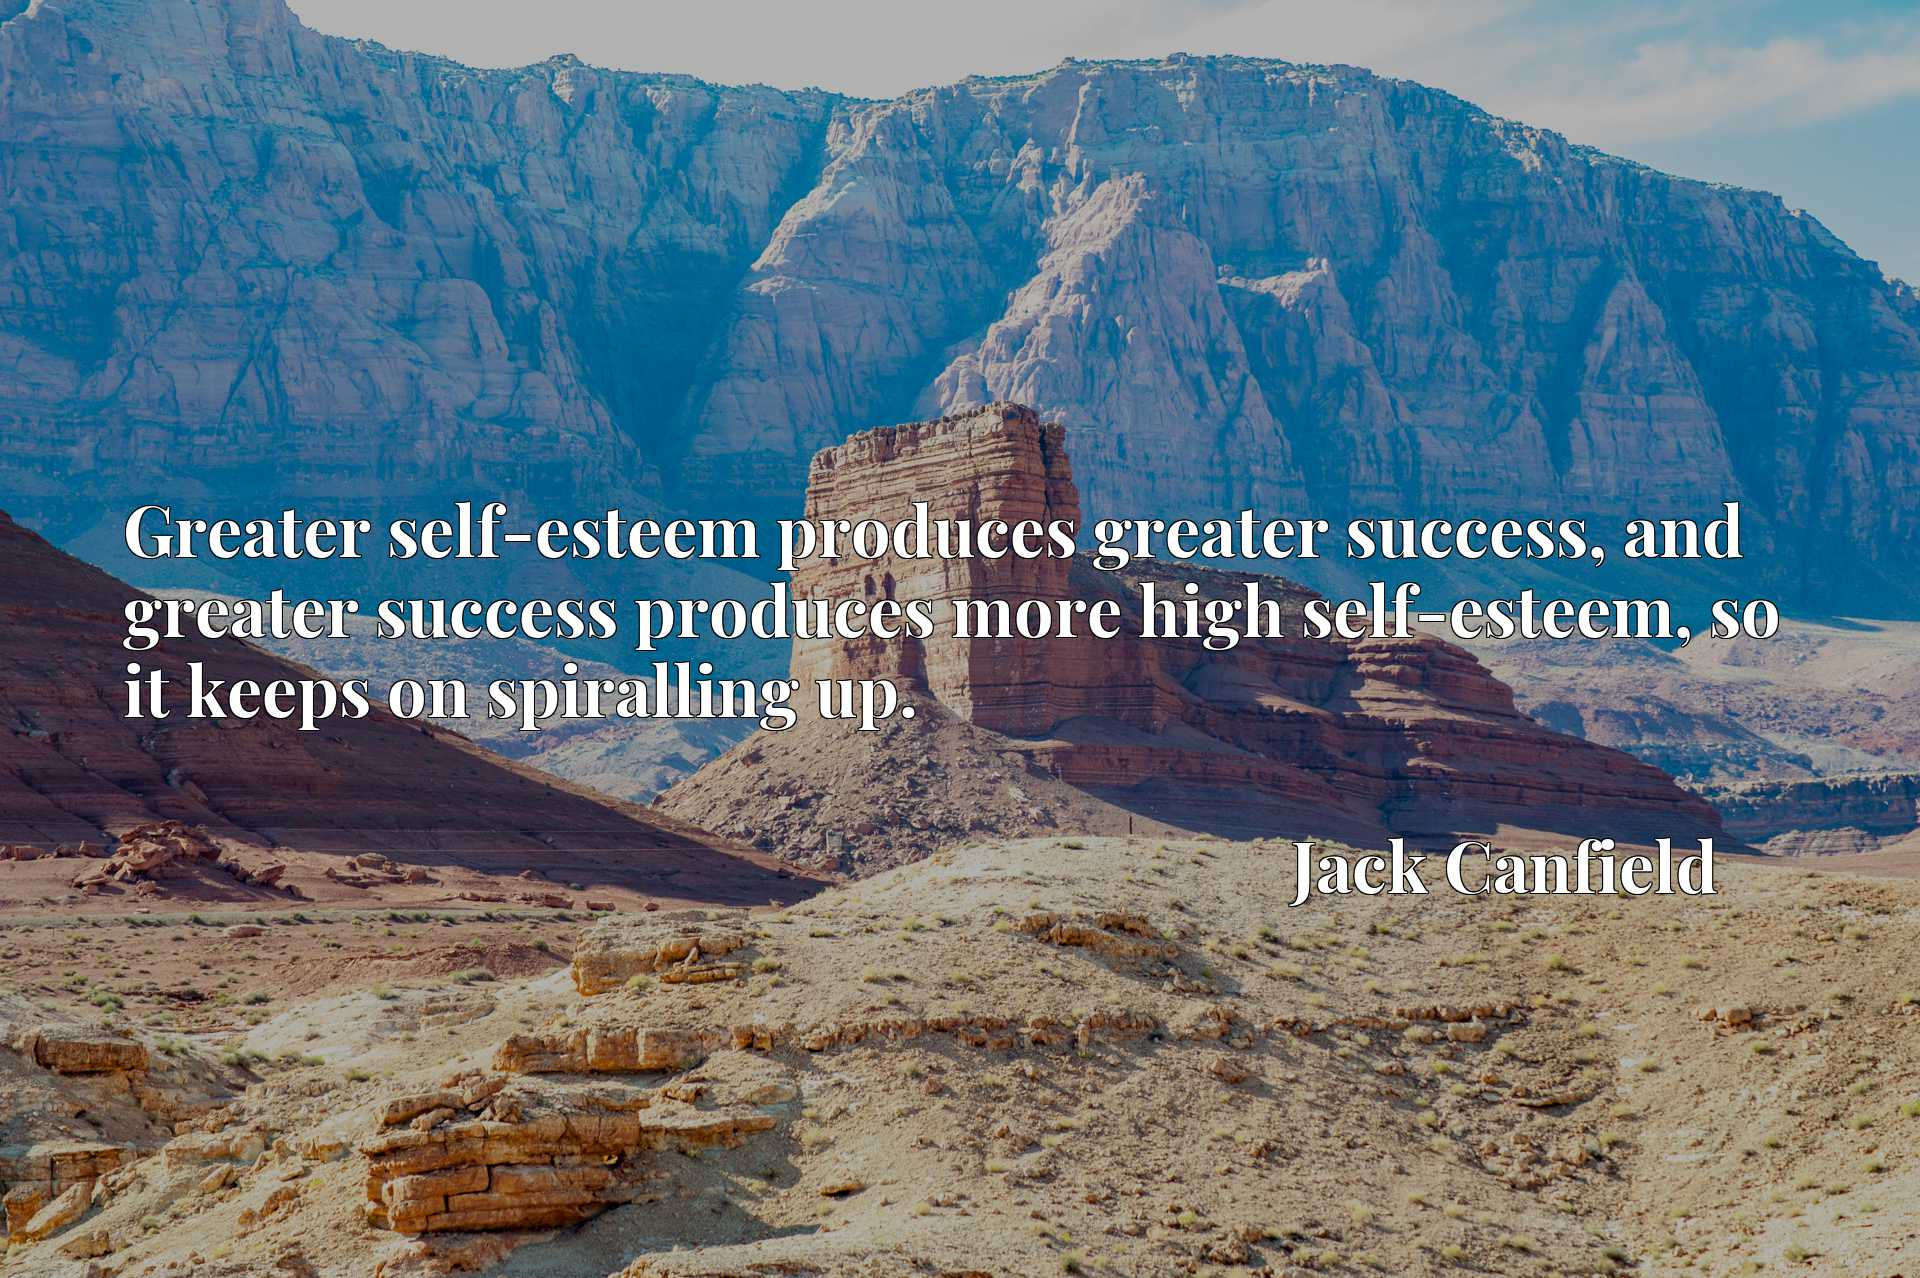 Greater self-esteem produces greater success, and greater success produces more high self-esteem, so it keeps on spiralling up.